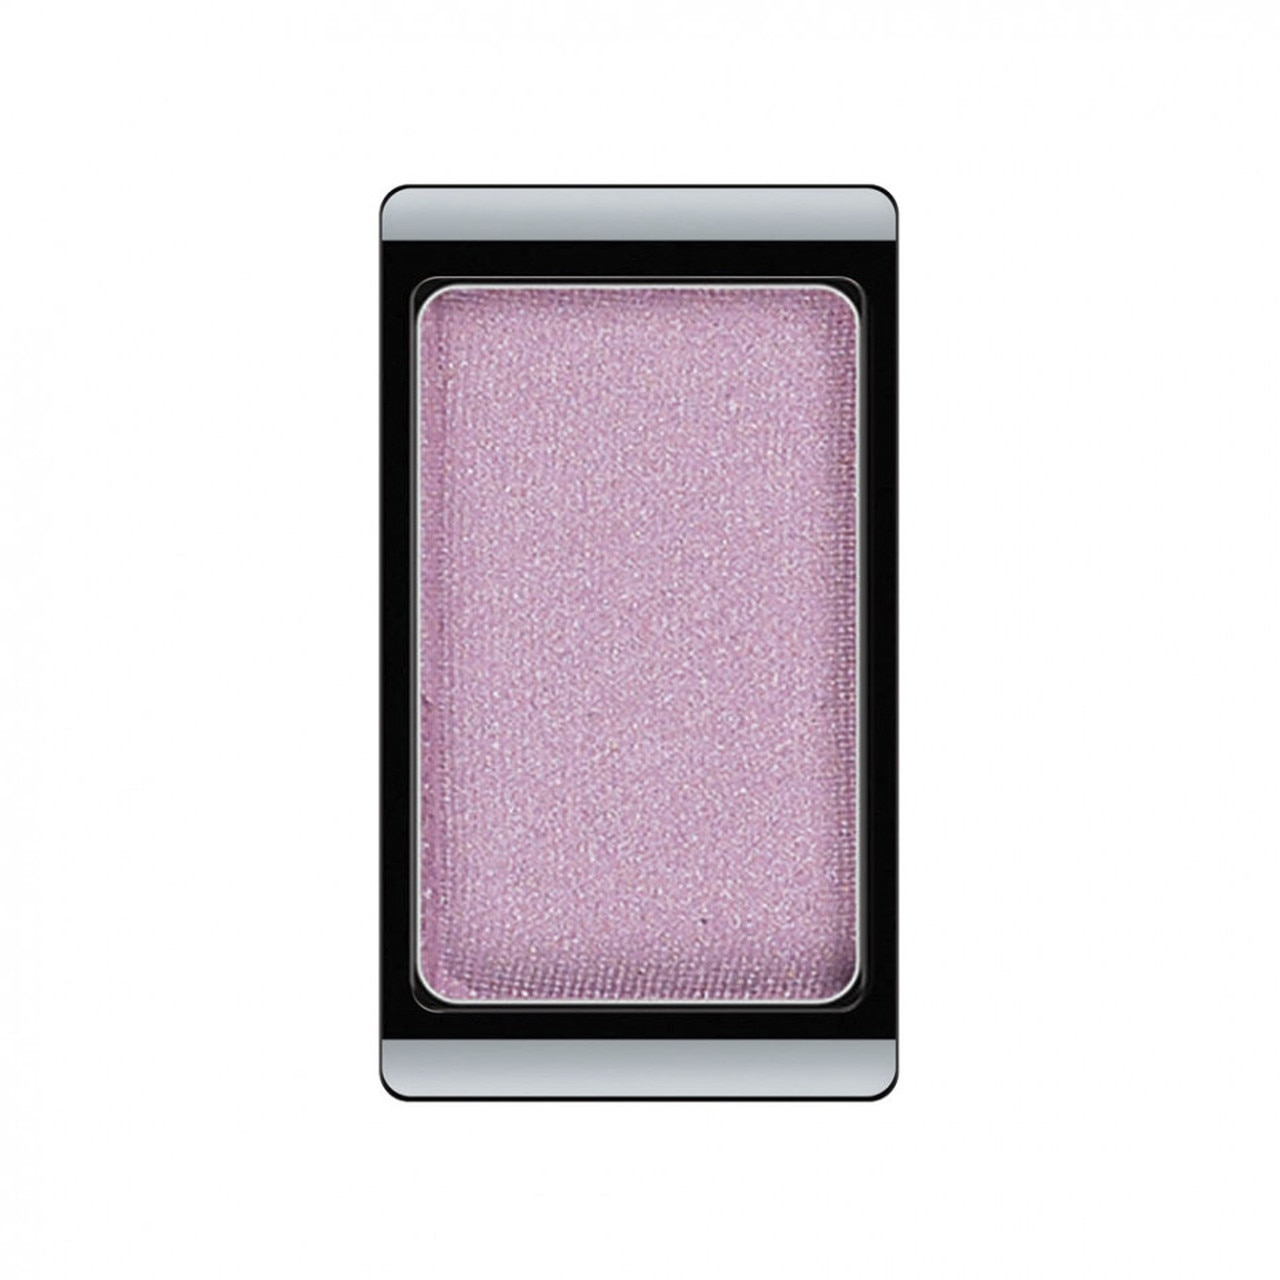 Eyeshadow 293